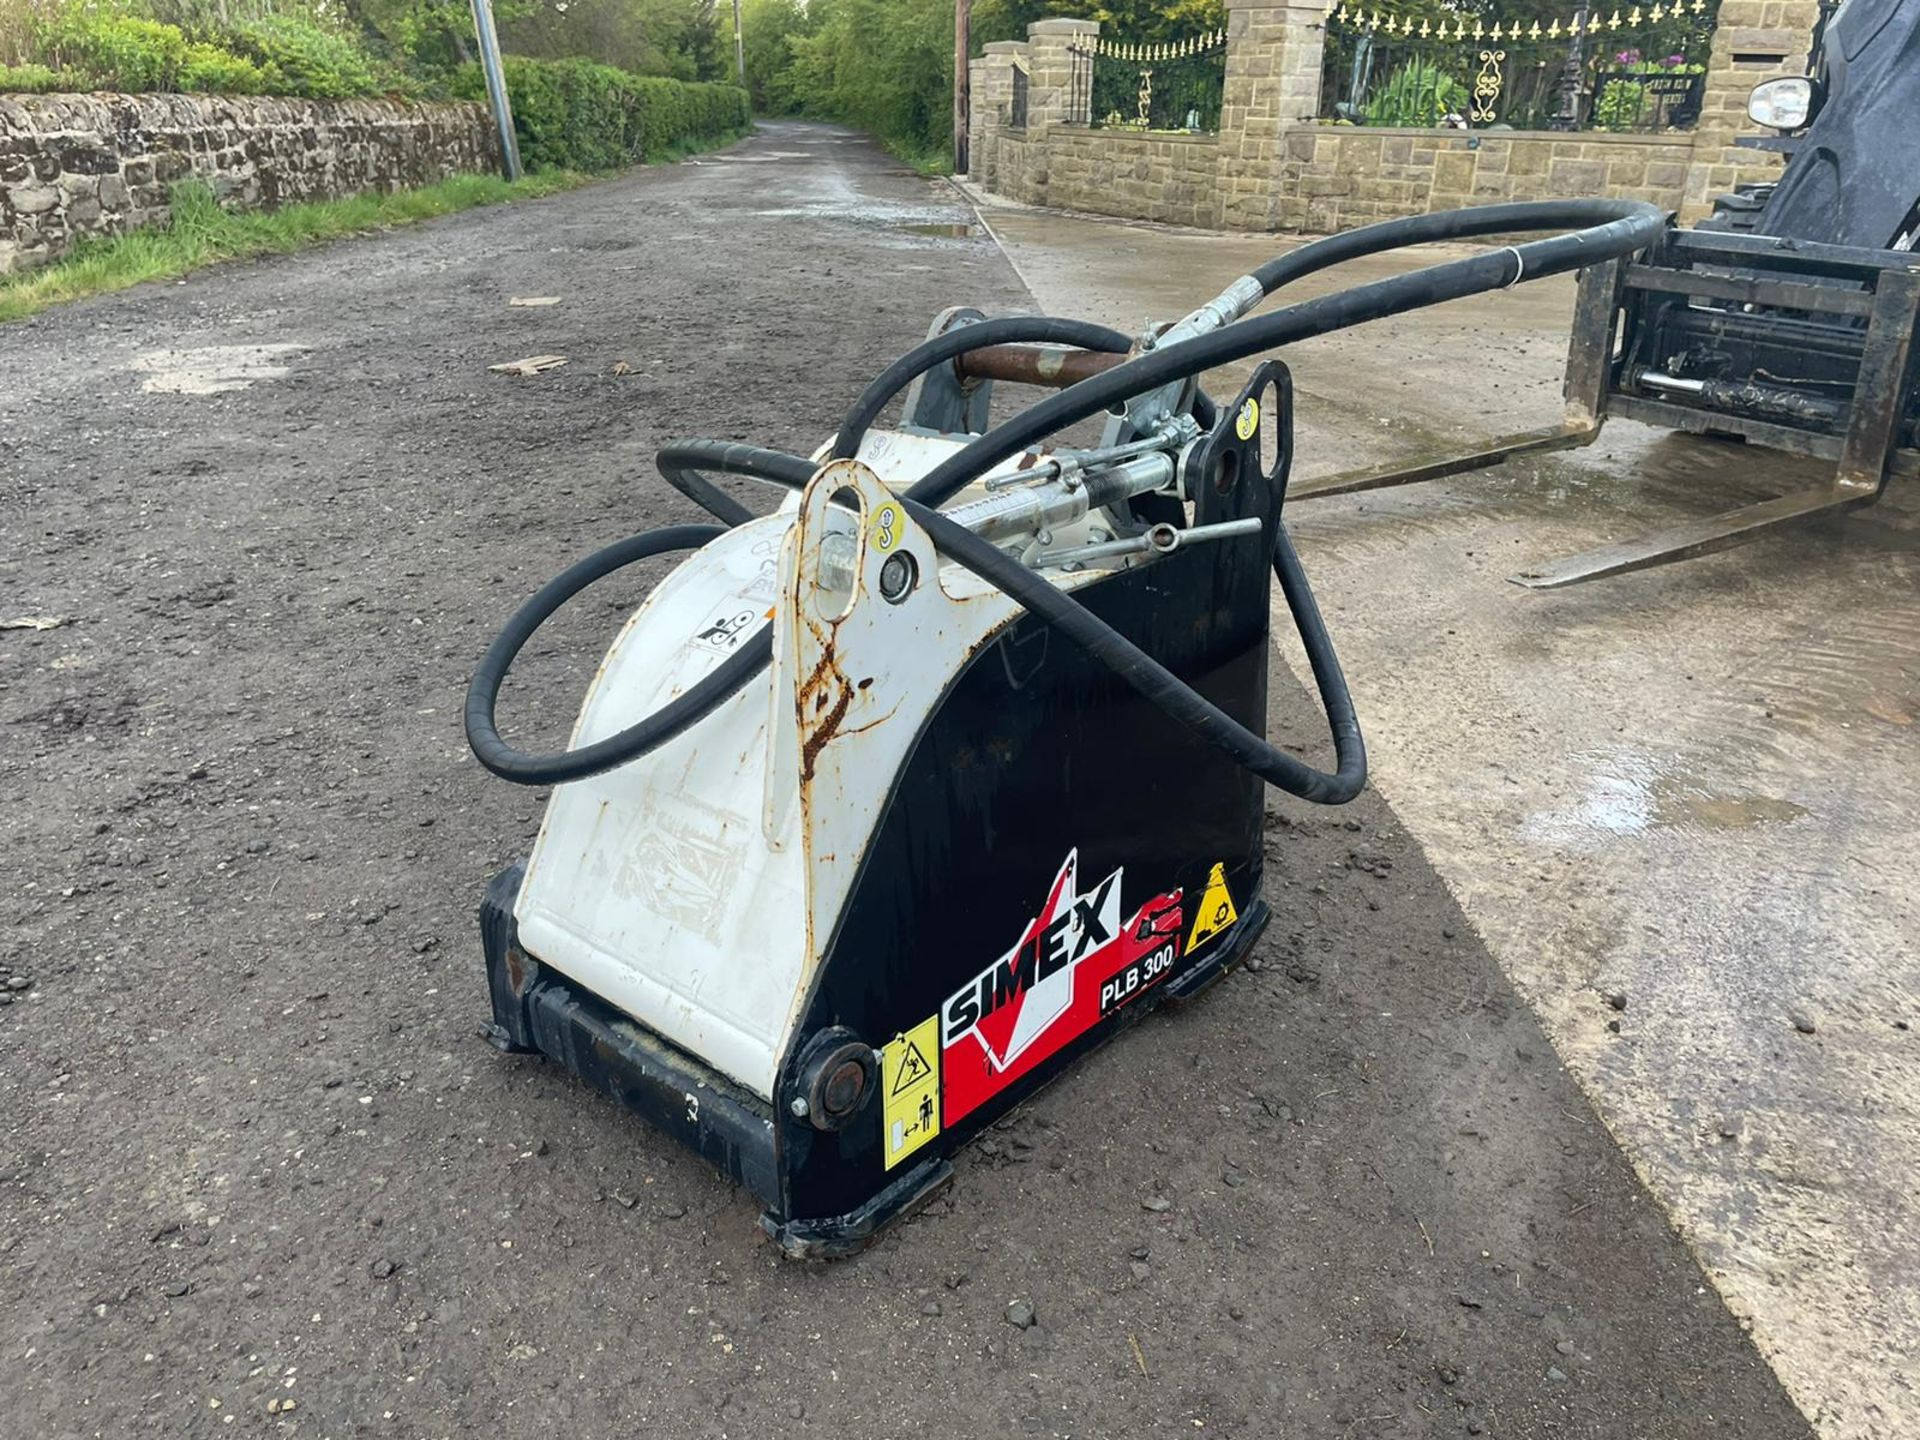 2011 SIMEX PLB 300 ROAD PLANER,HYDRAULIC DRIVEN, NOT DONE MUCH WORK, SUITABLE FOR EXCAVATOR PLUS VAT - Image 2 of 6